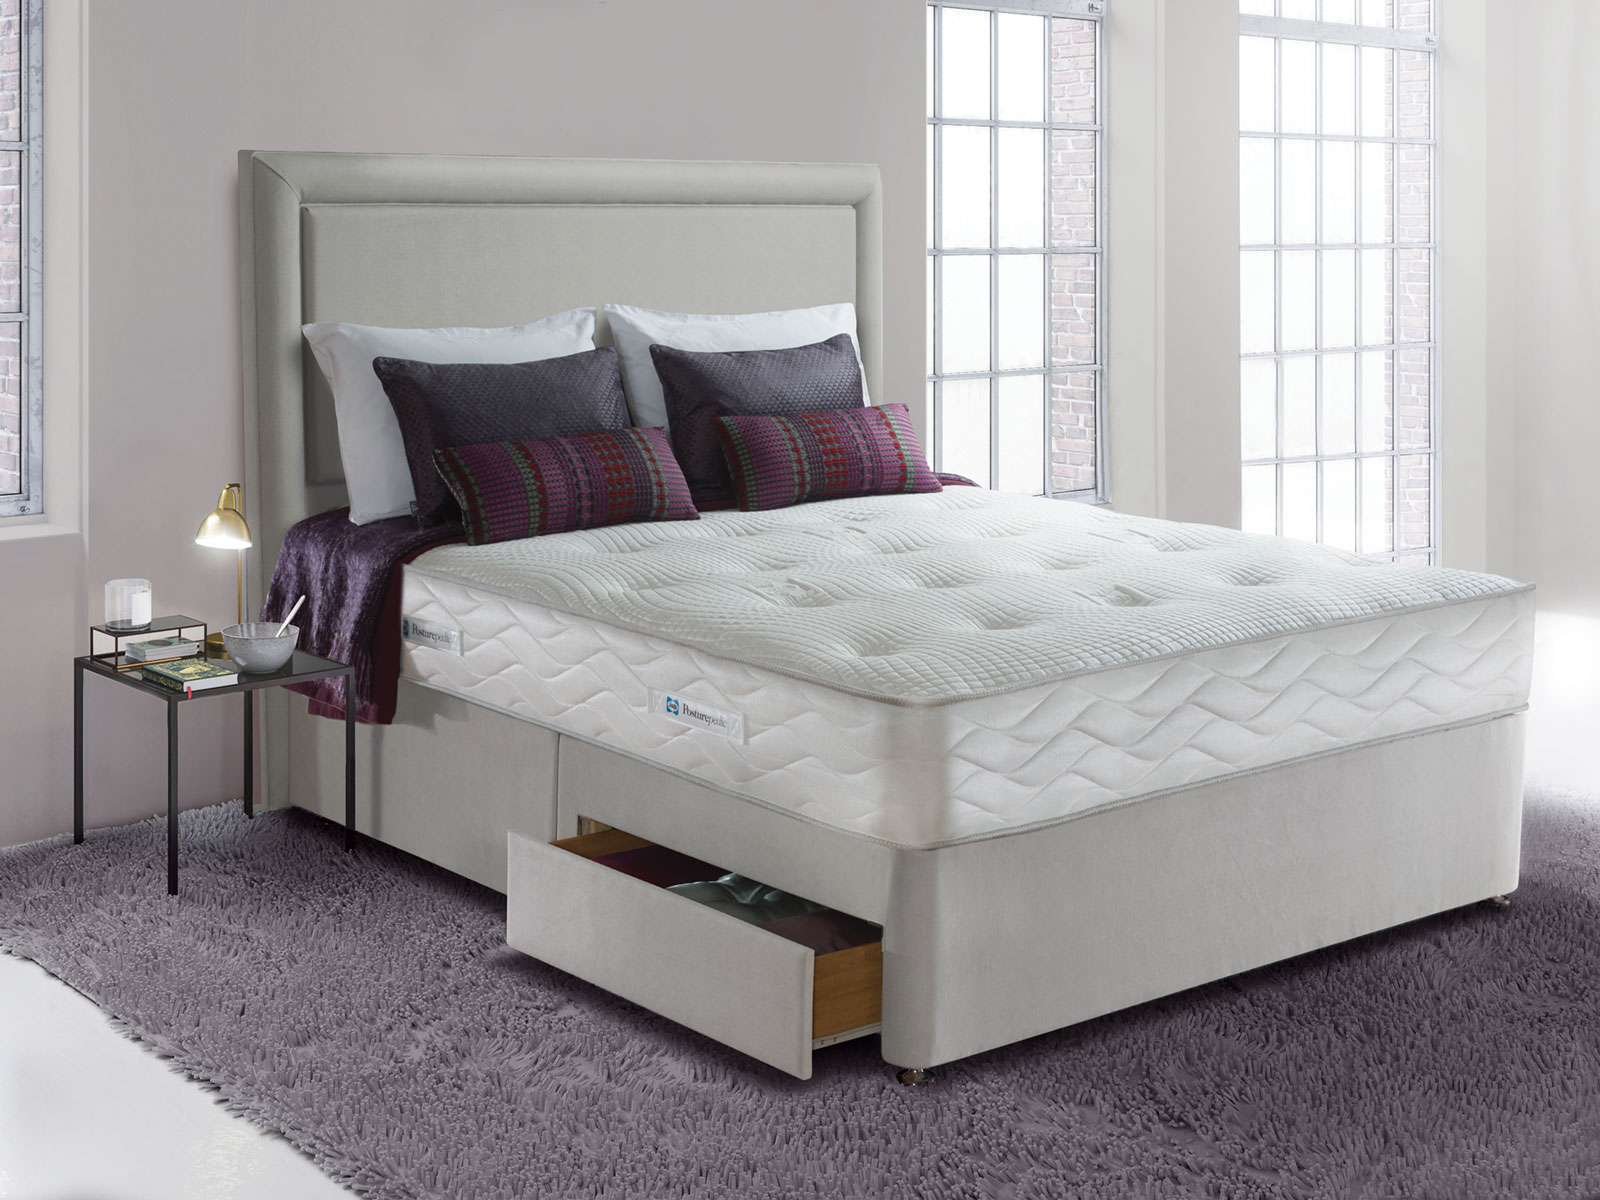 6ft Super King Size Sealy Jubilee Ortho Posturepedic